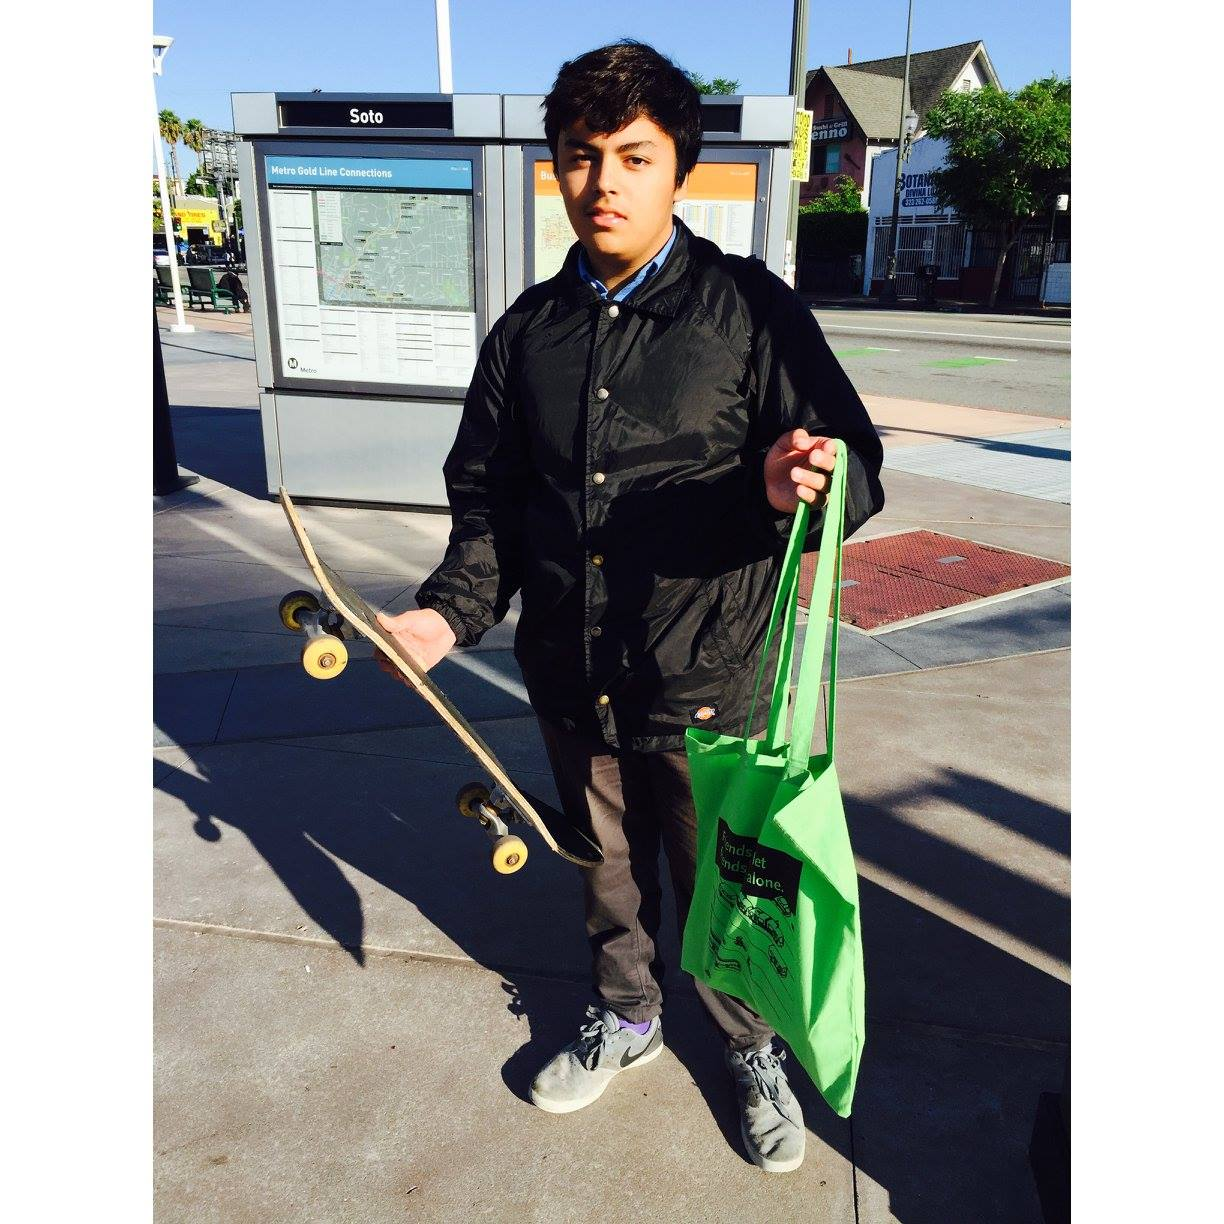 Jonathan riding his skateboard and taking the Gold Line on his way to school!